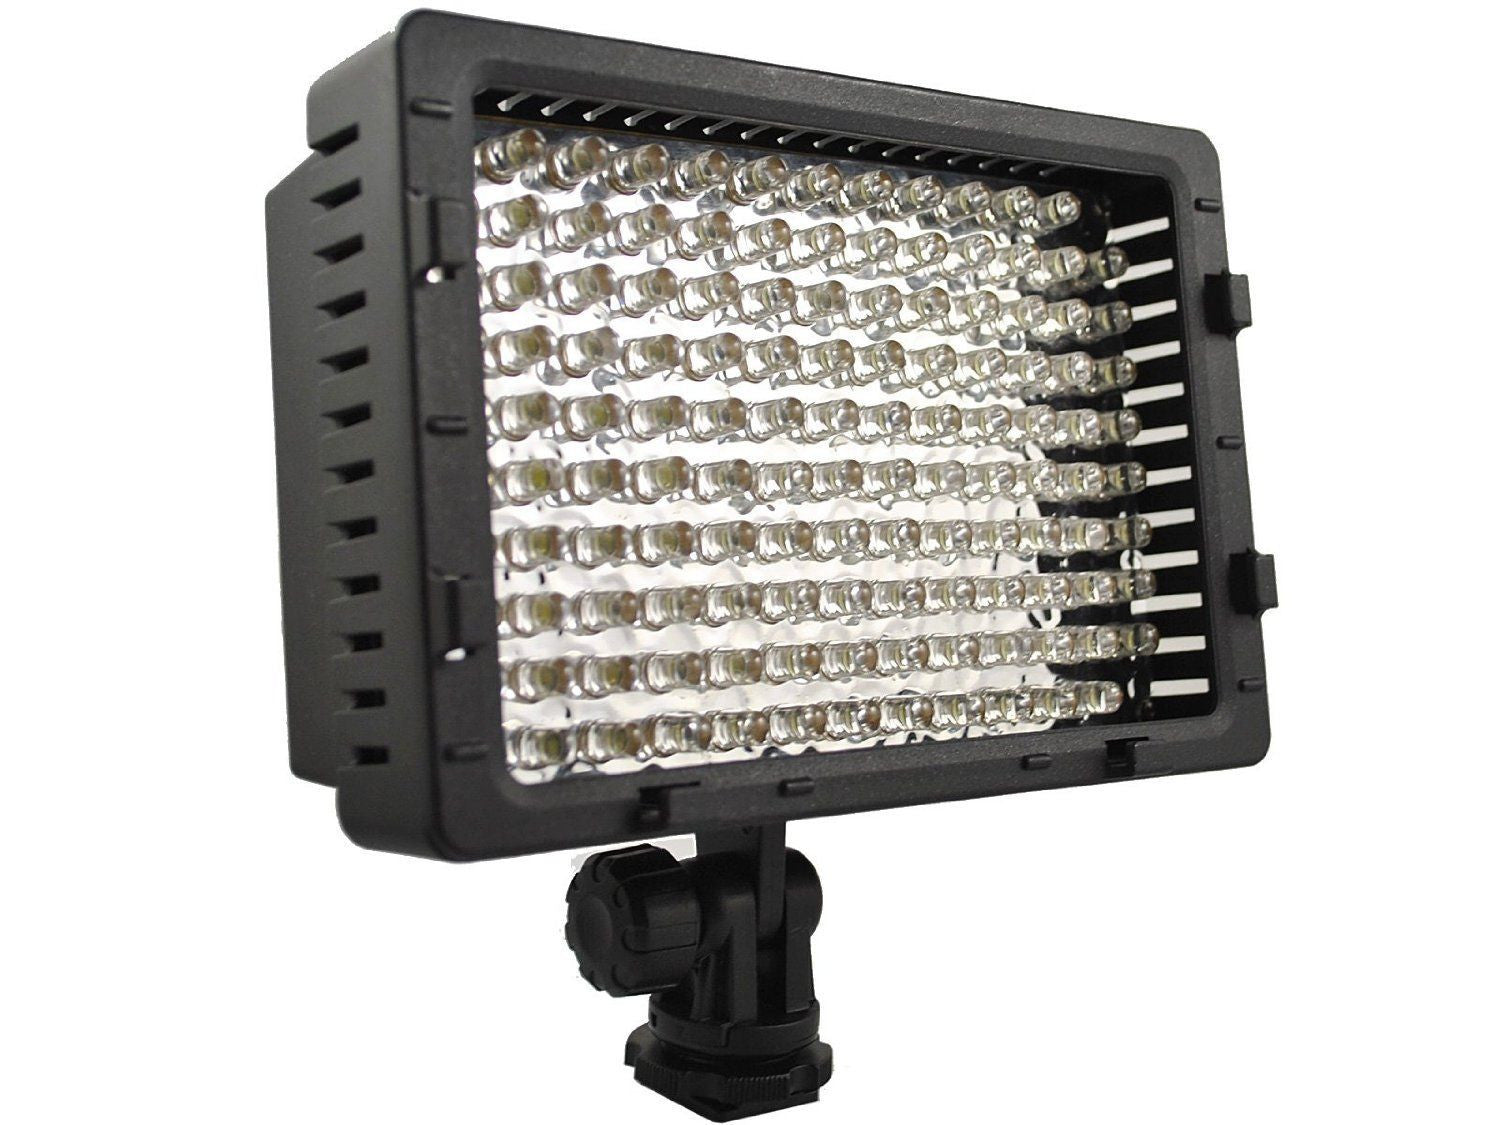 R-4 LED Video Light - Panasonic